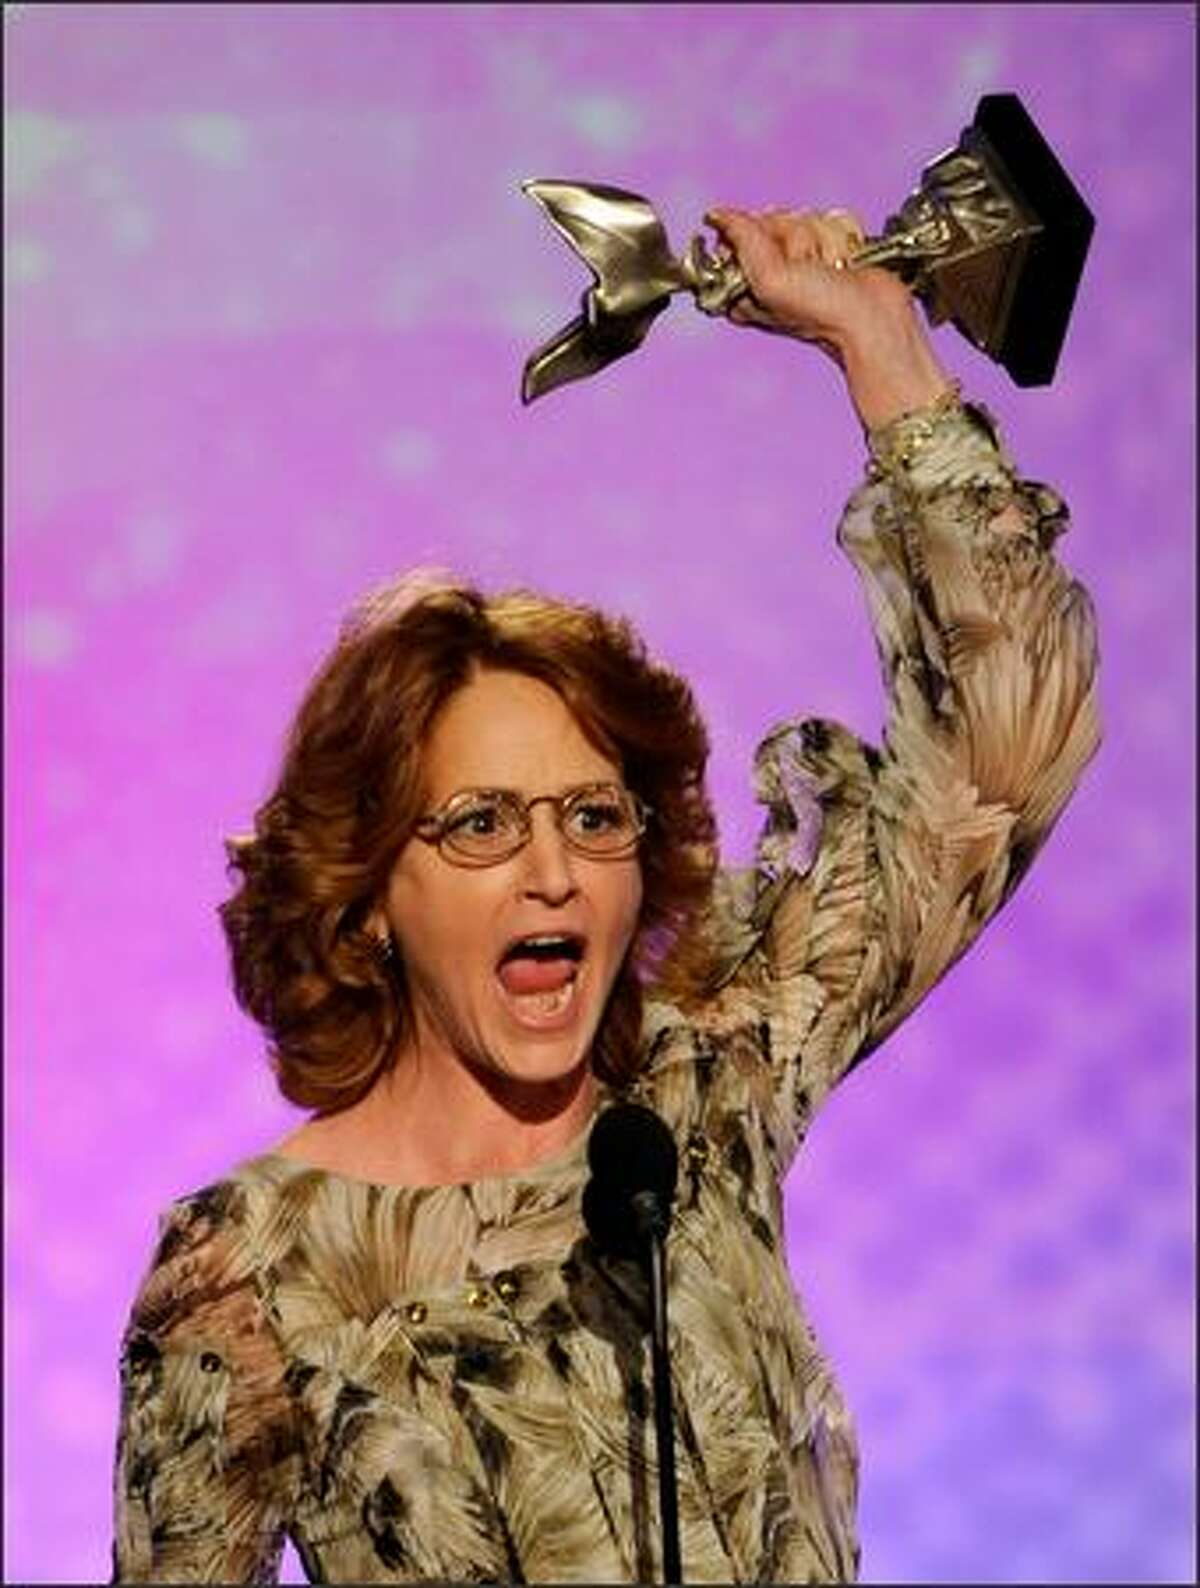 Actress Melissa Leo accepts the Best Female Lead Award for